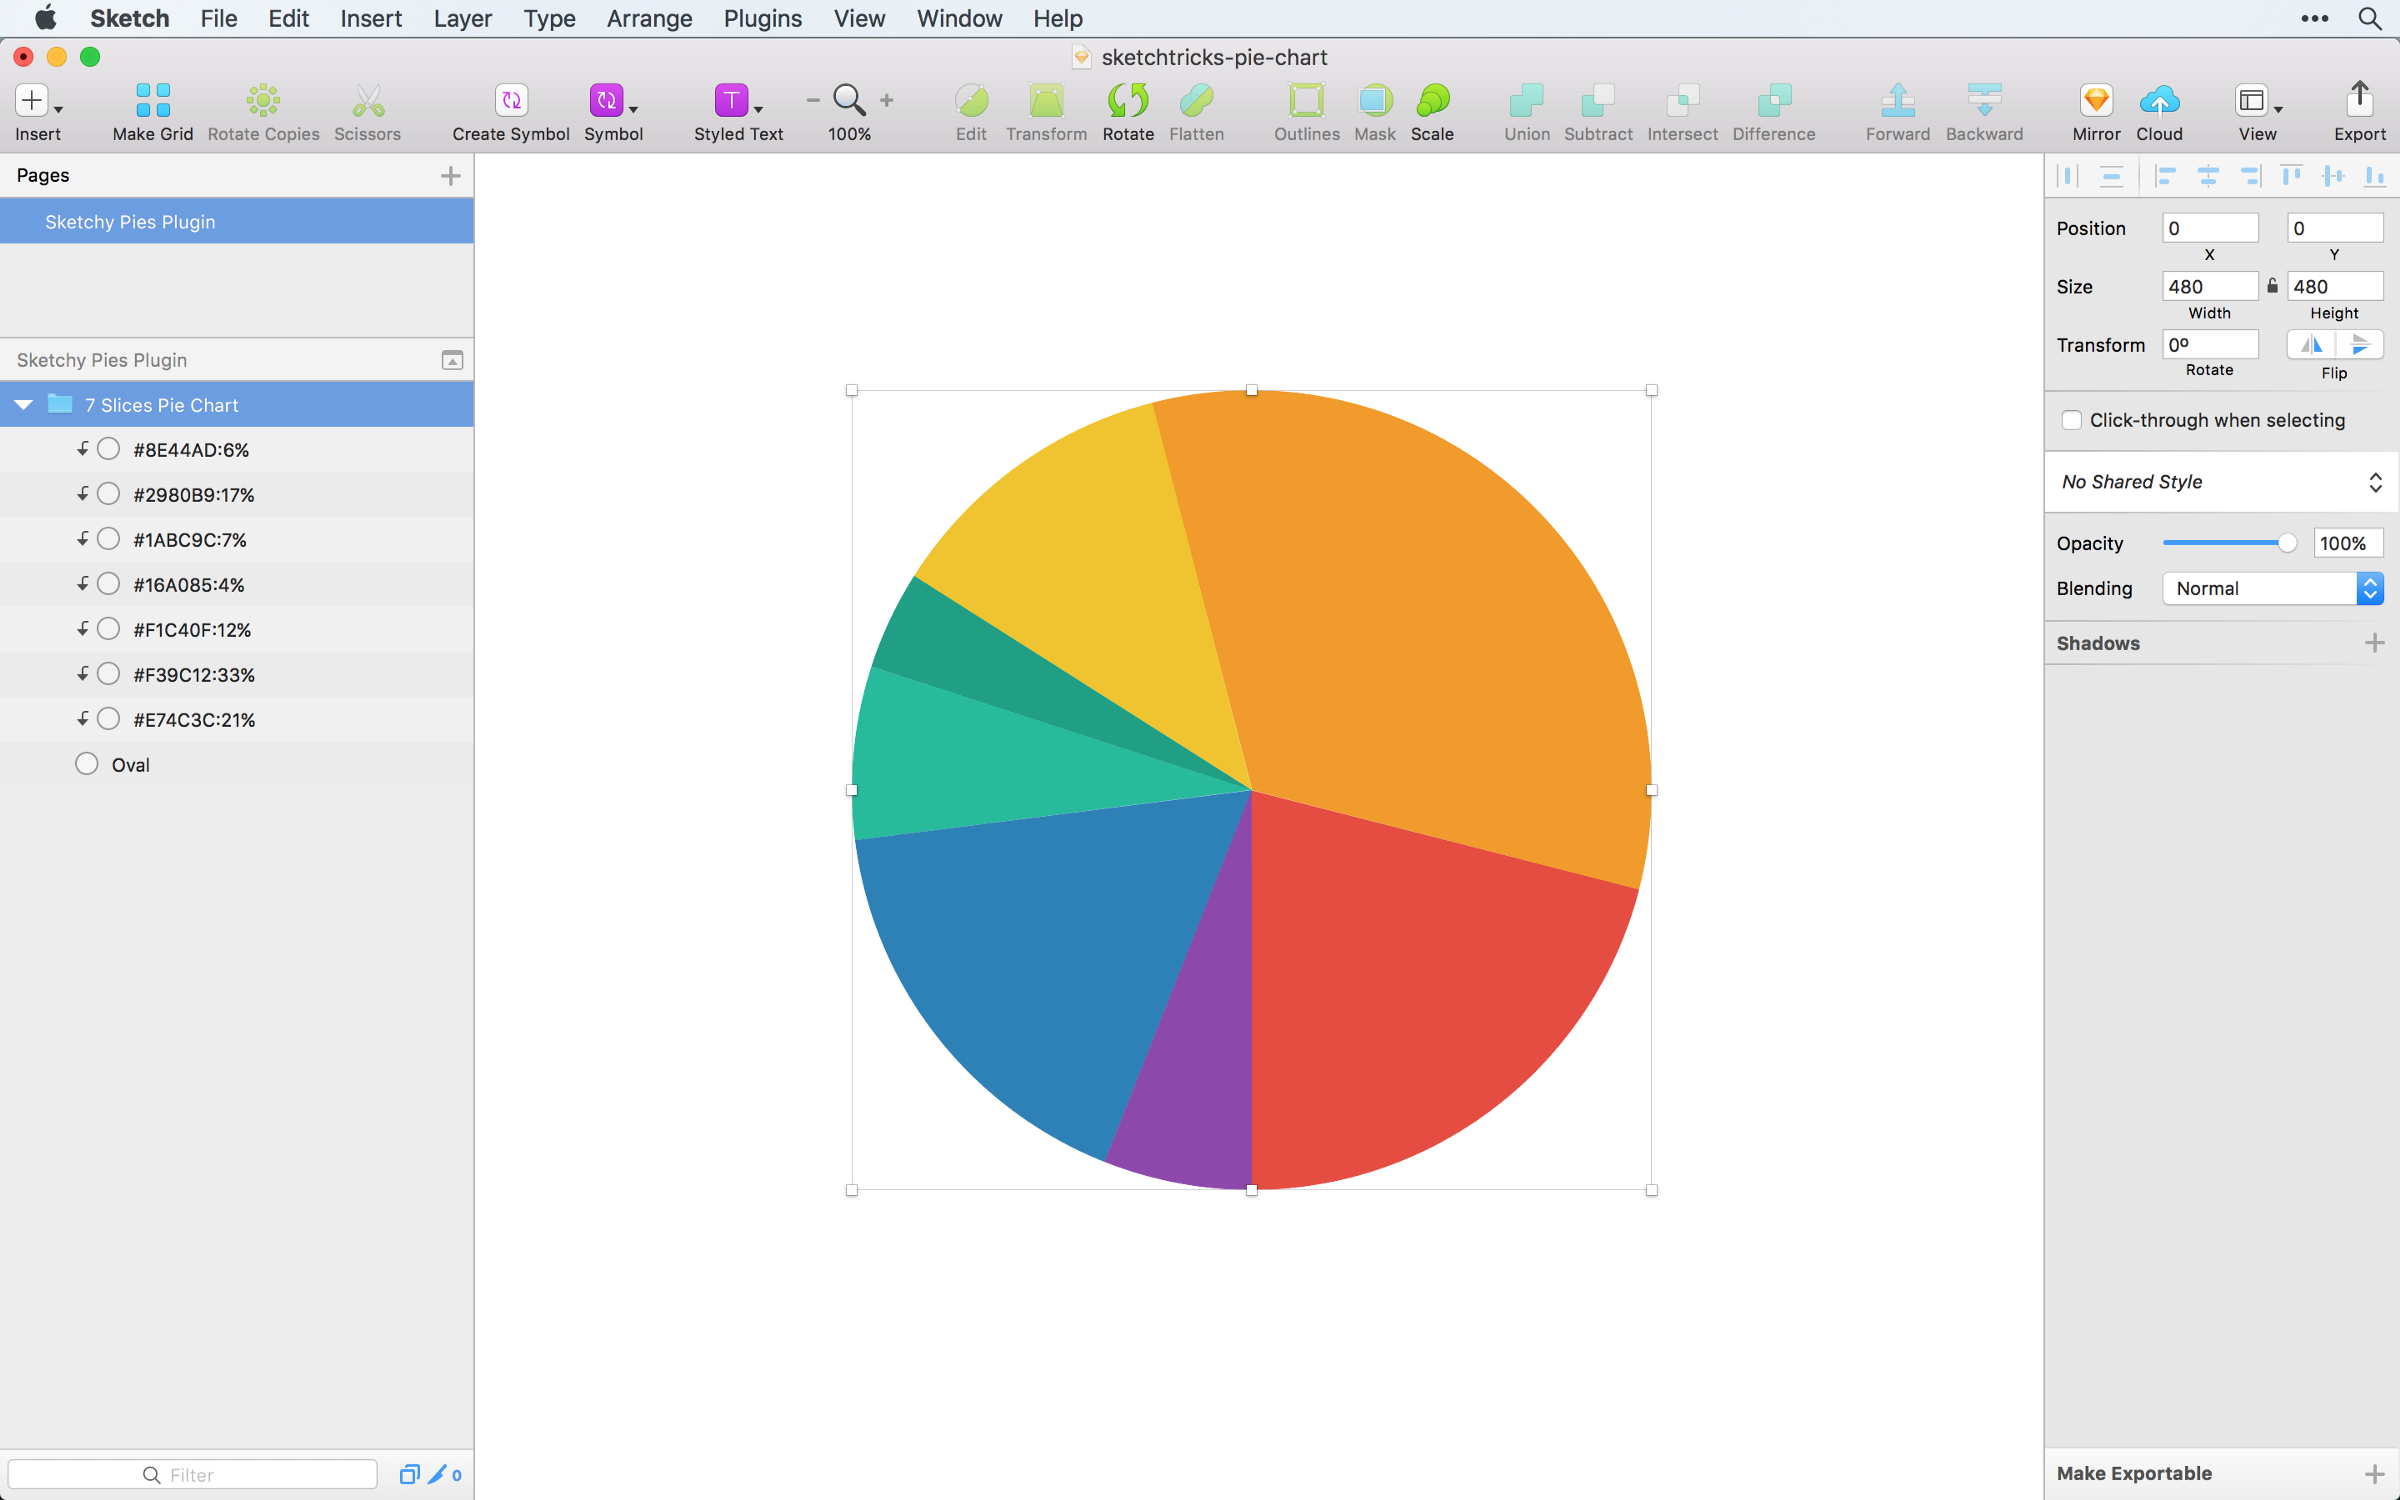 This Is A Way Faster Of Making Pie Chart Compared To An Angular Grant Method Isn T It Sometimes You Have Do Things The Wrong First See